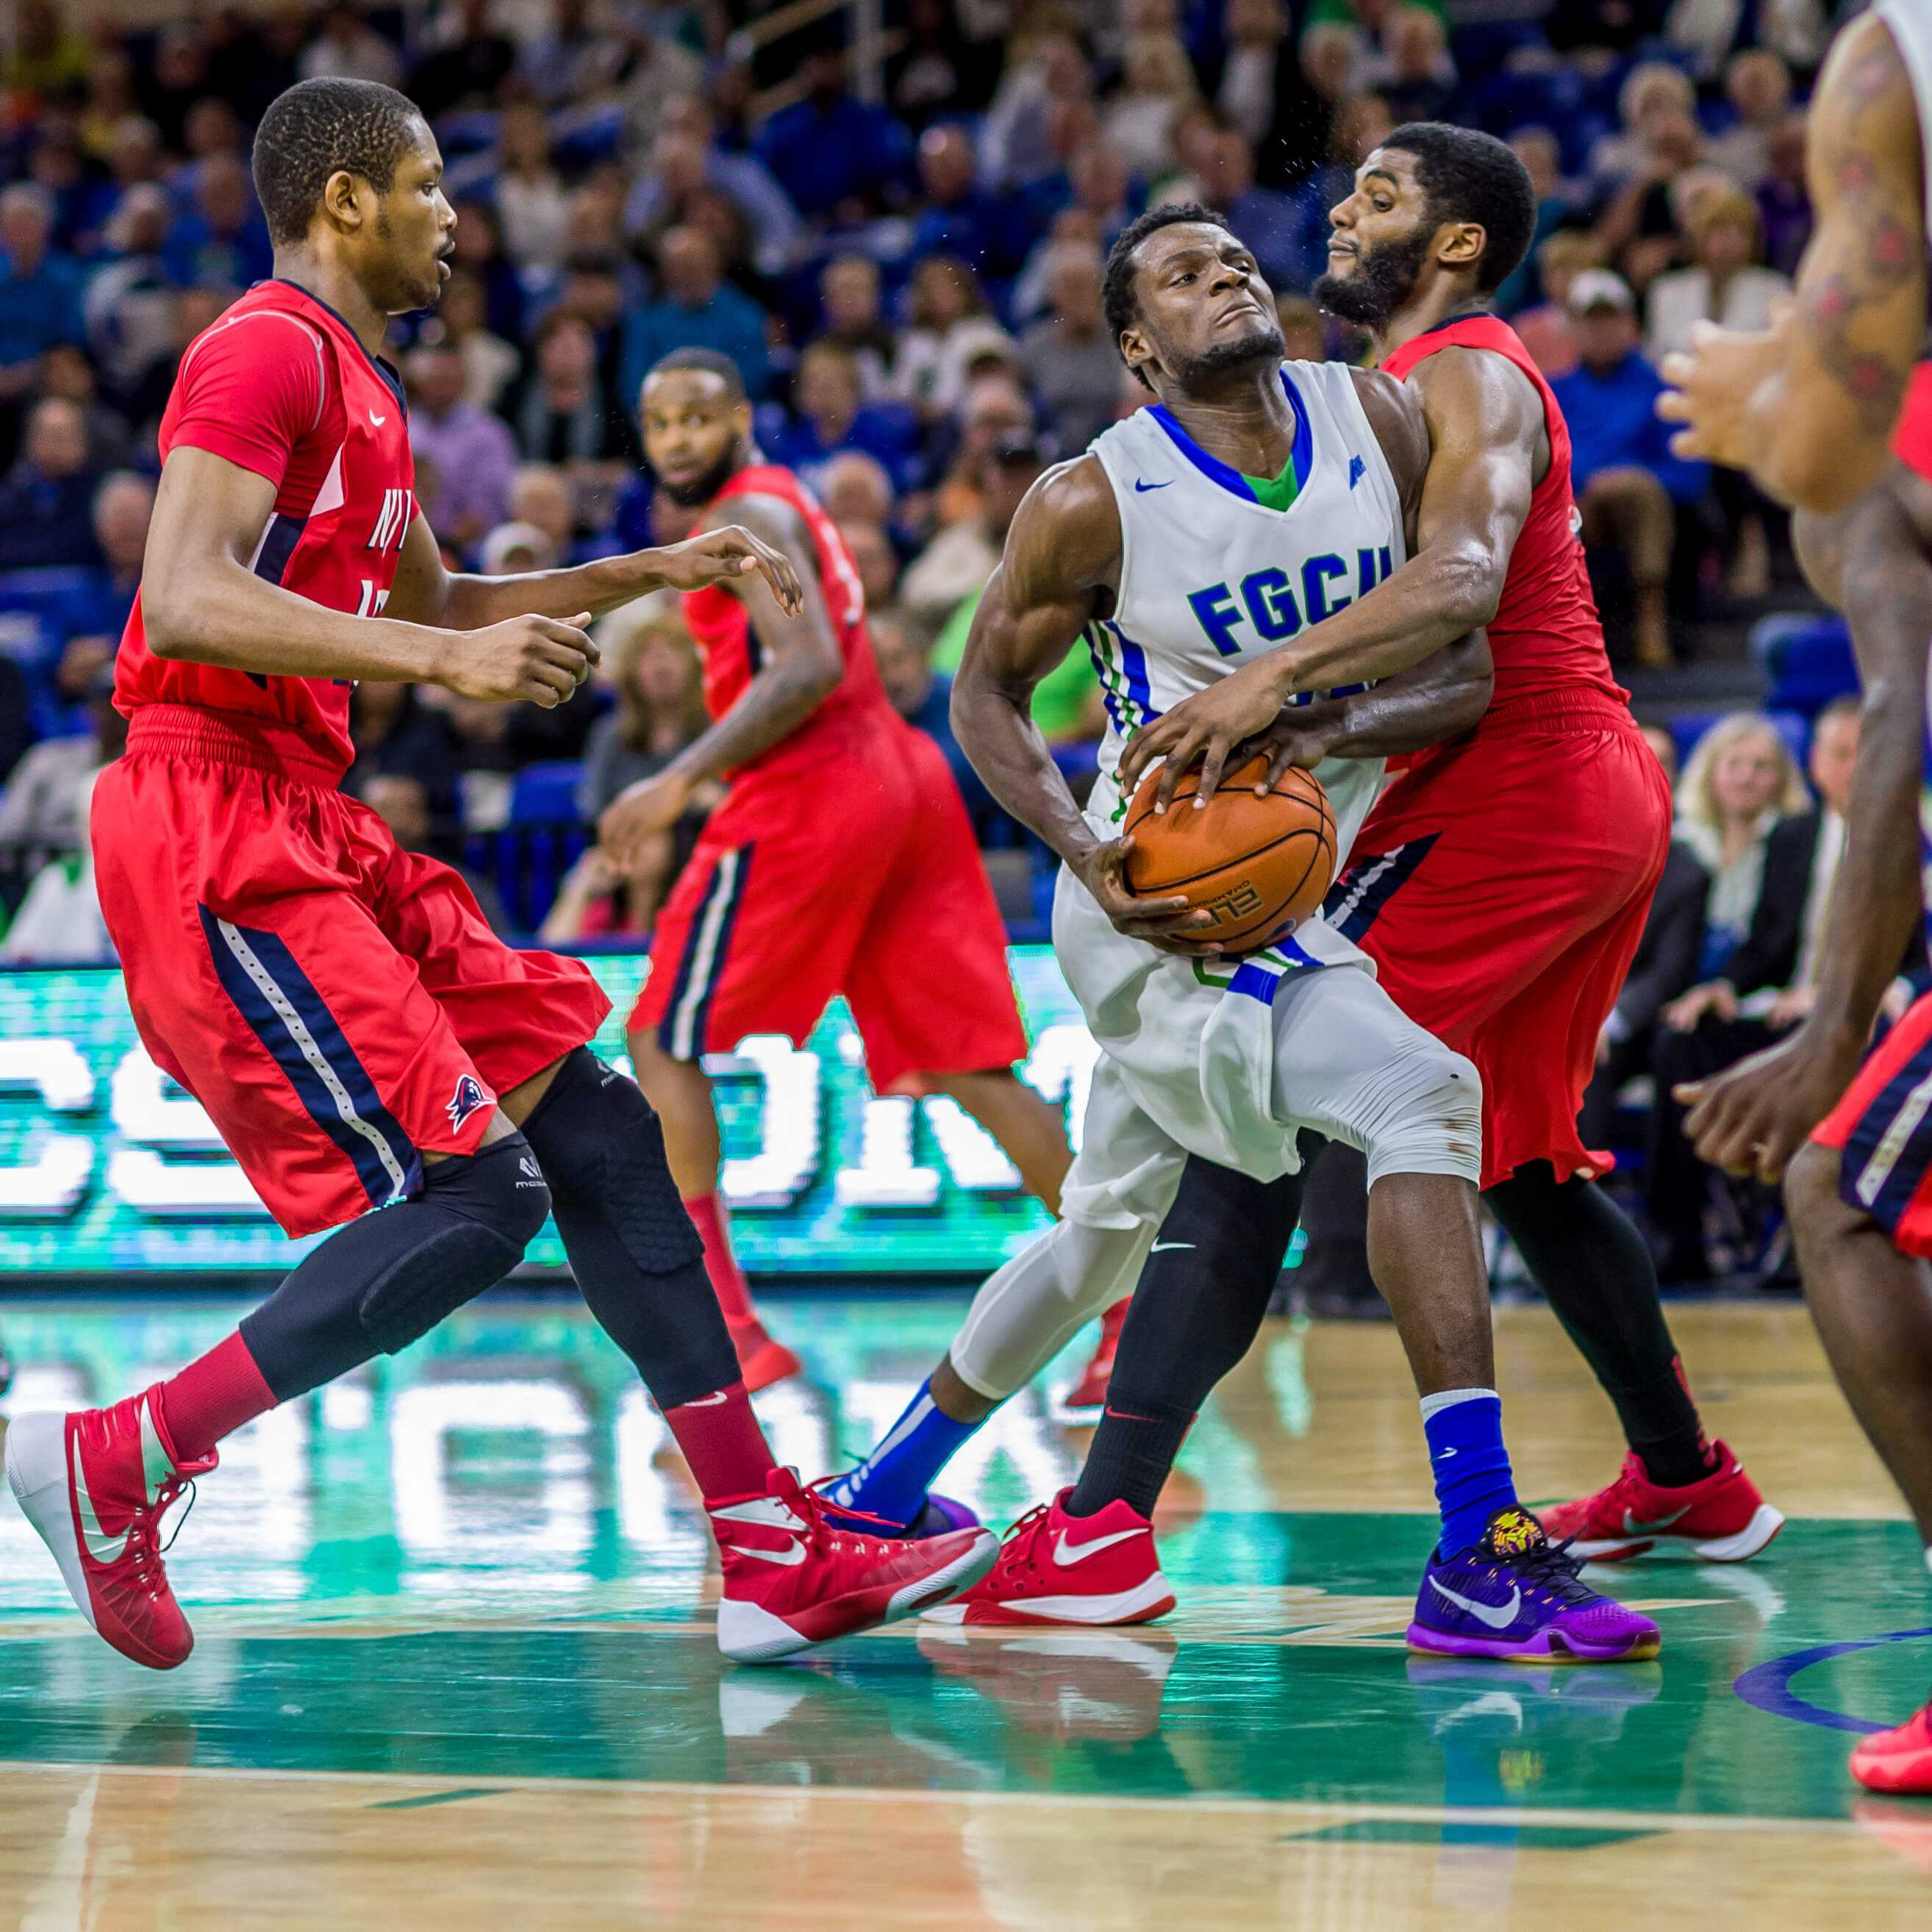 FGCU men's hoops drops critical game to NJIT, moves to fourth place in A-Sun